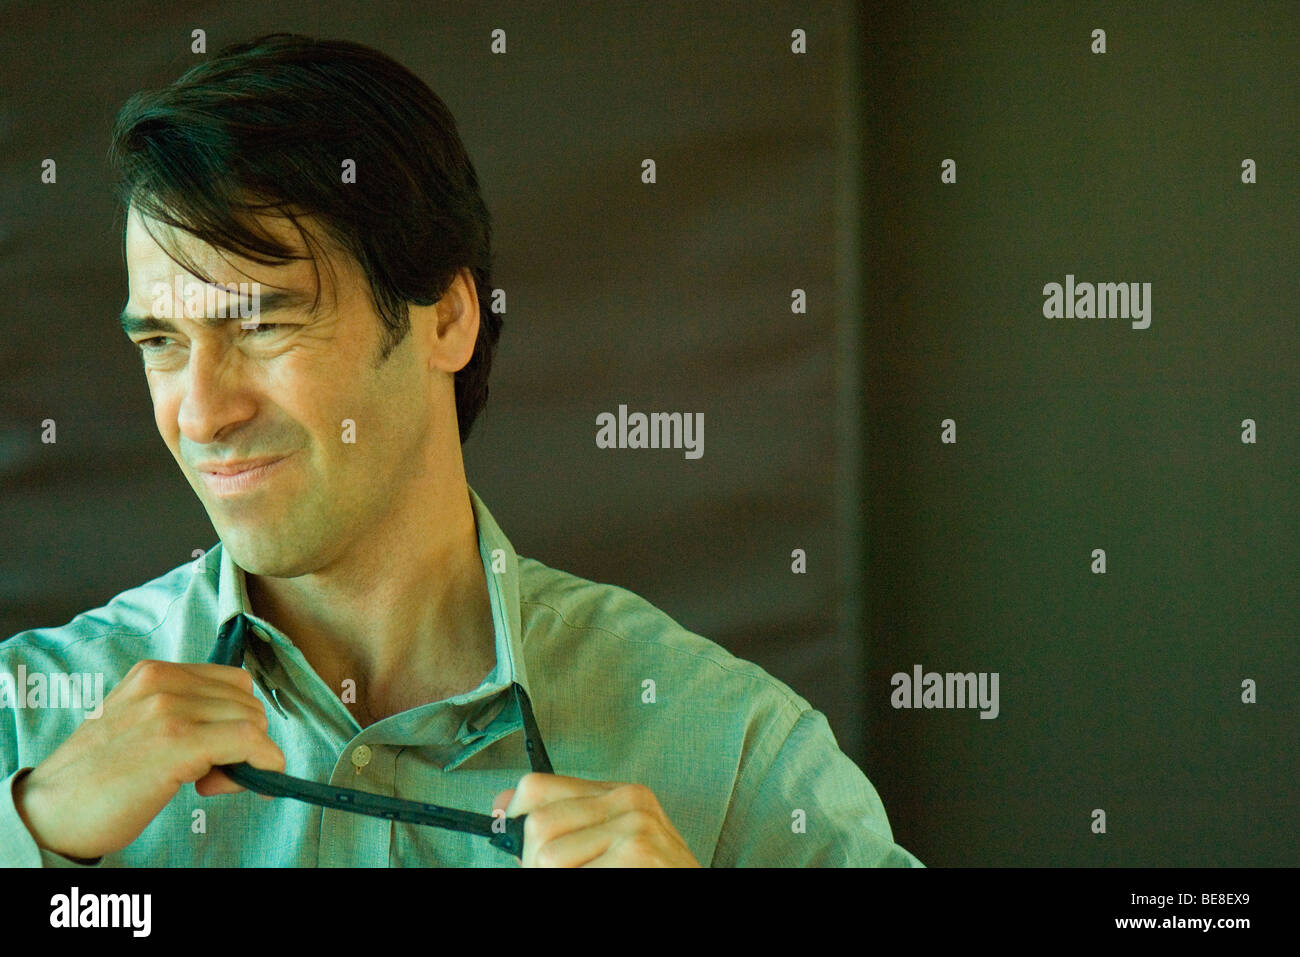 Businessman grimacing while taking off tie - Stock Image